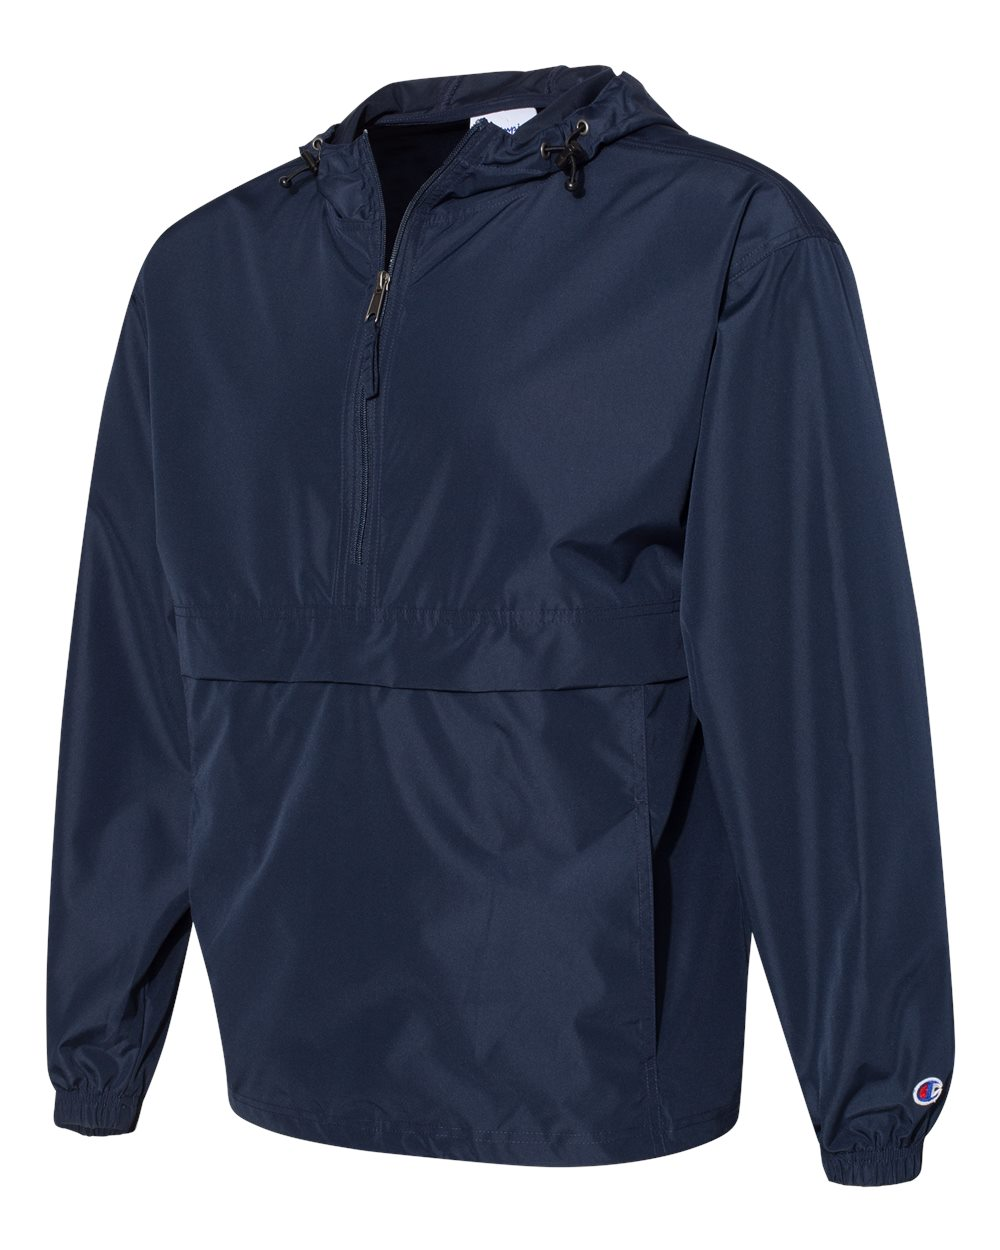 448fc819 Champion CO200 - Packable Jacket $18.74 - Men's Outerwear